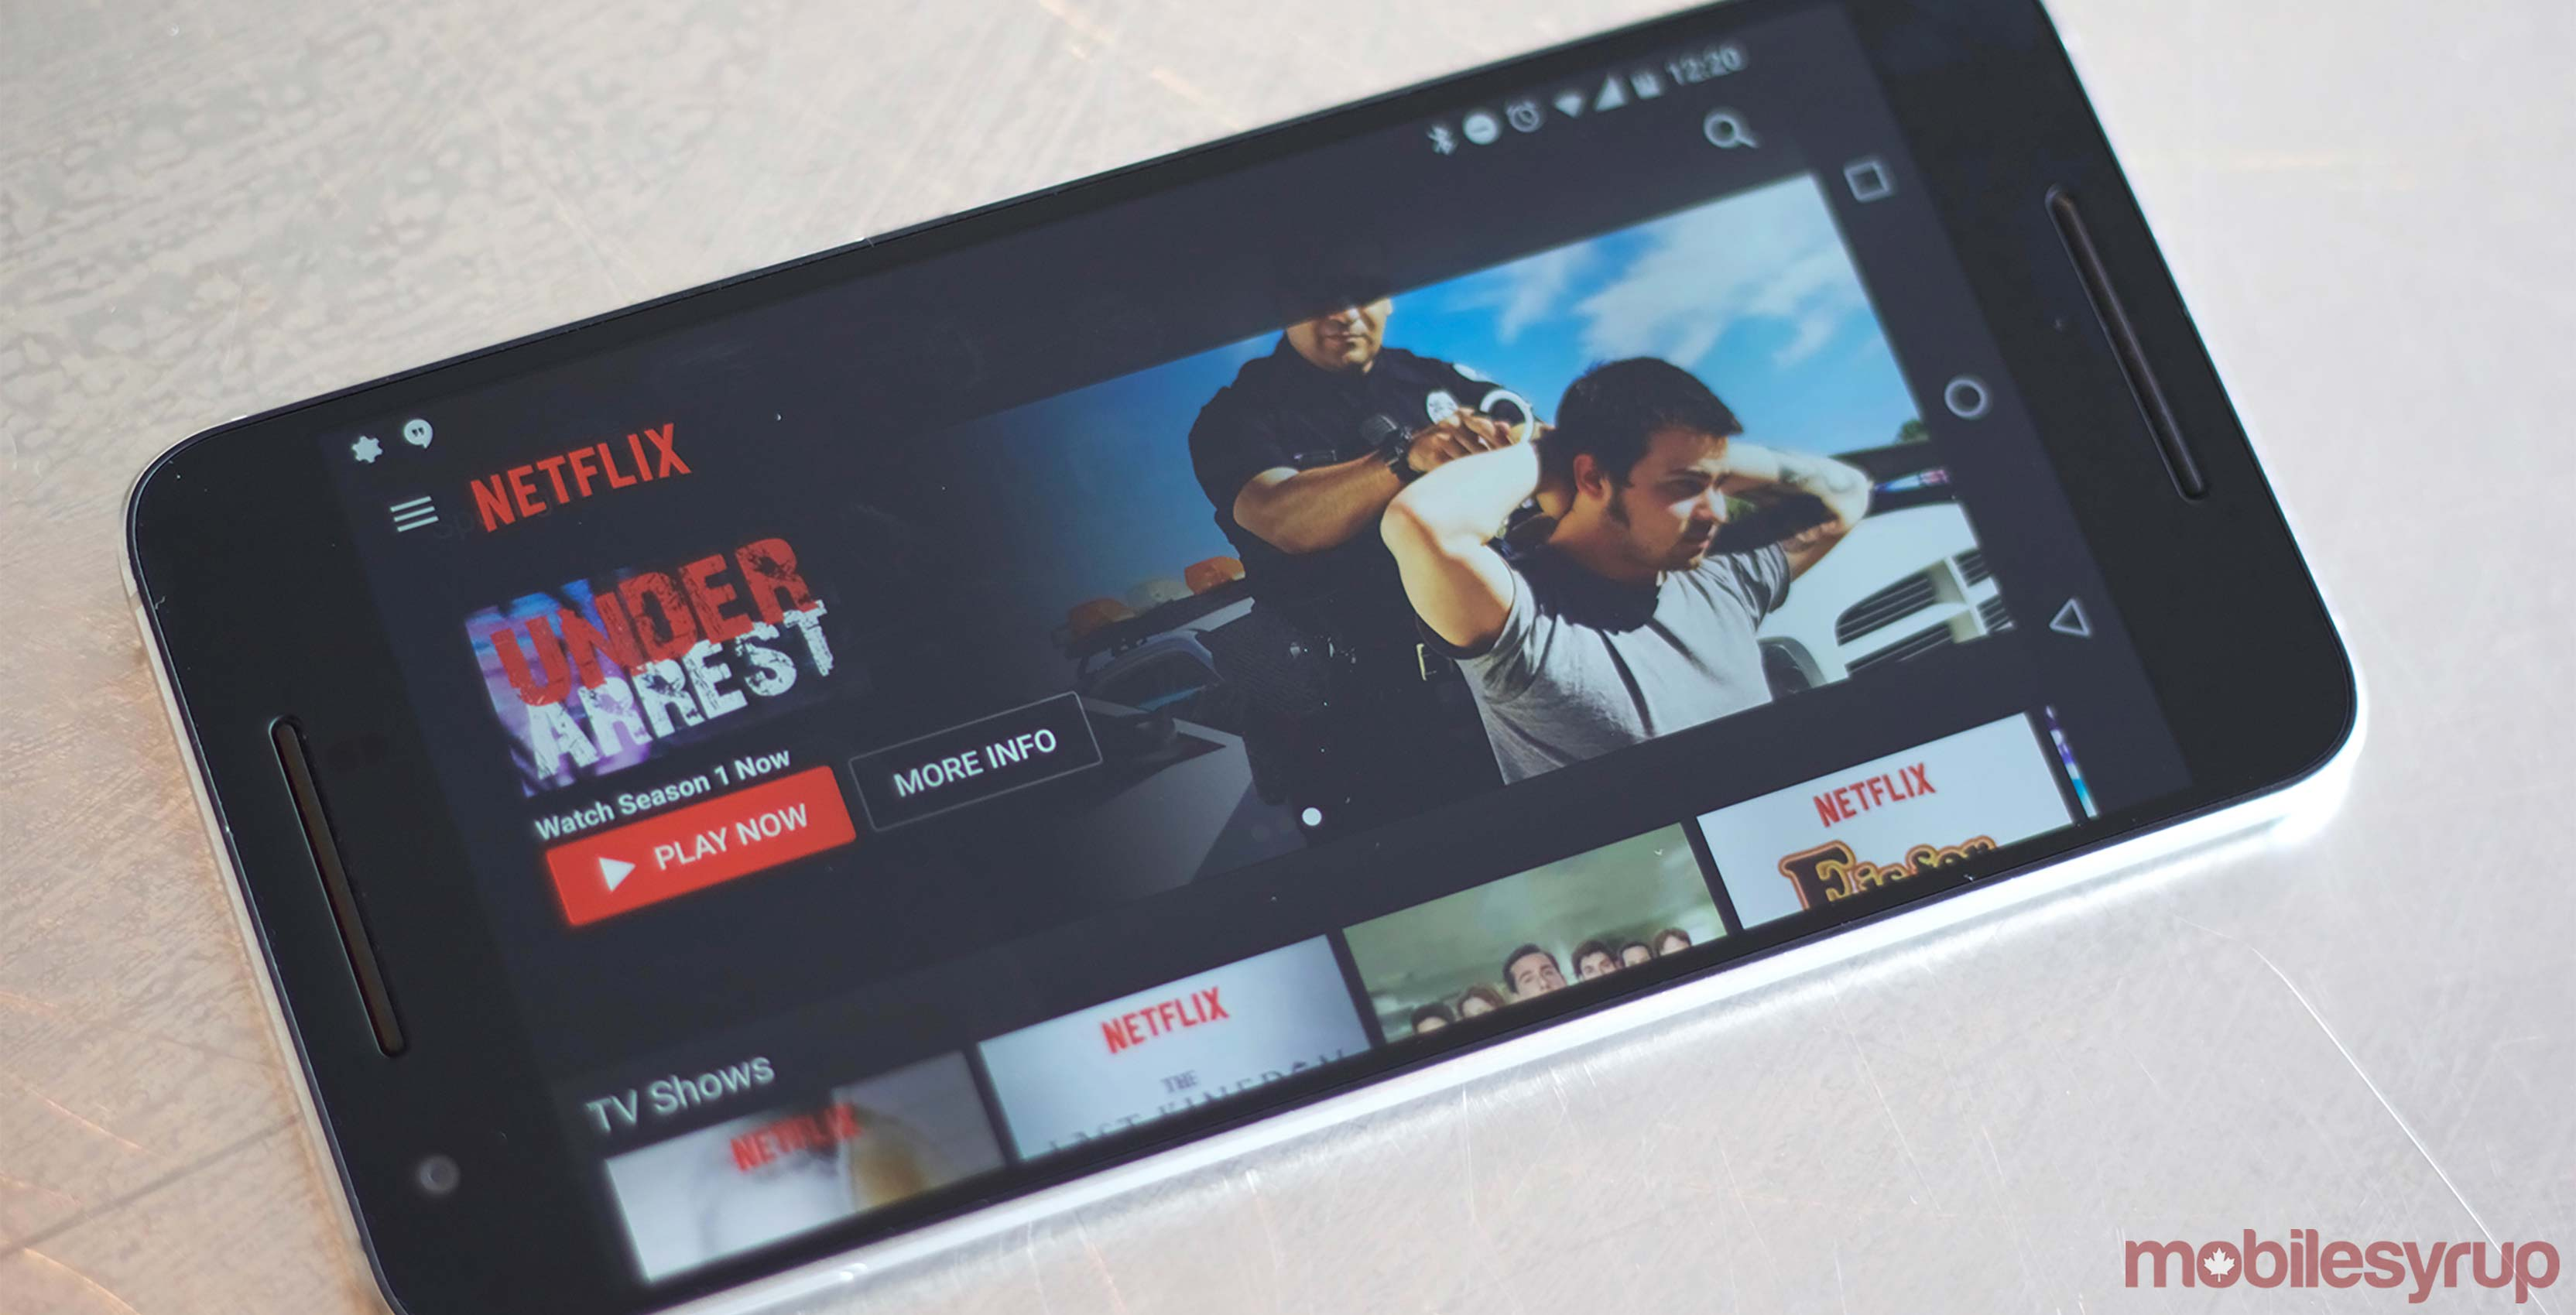 Netflix app on Android